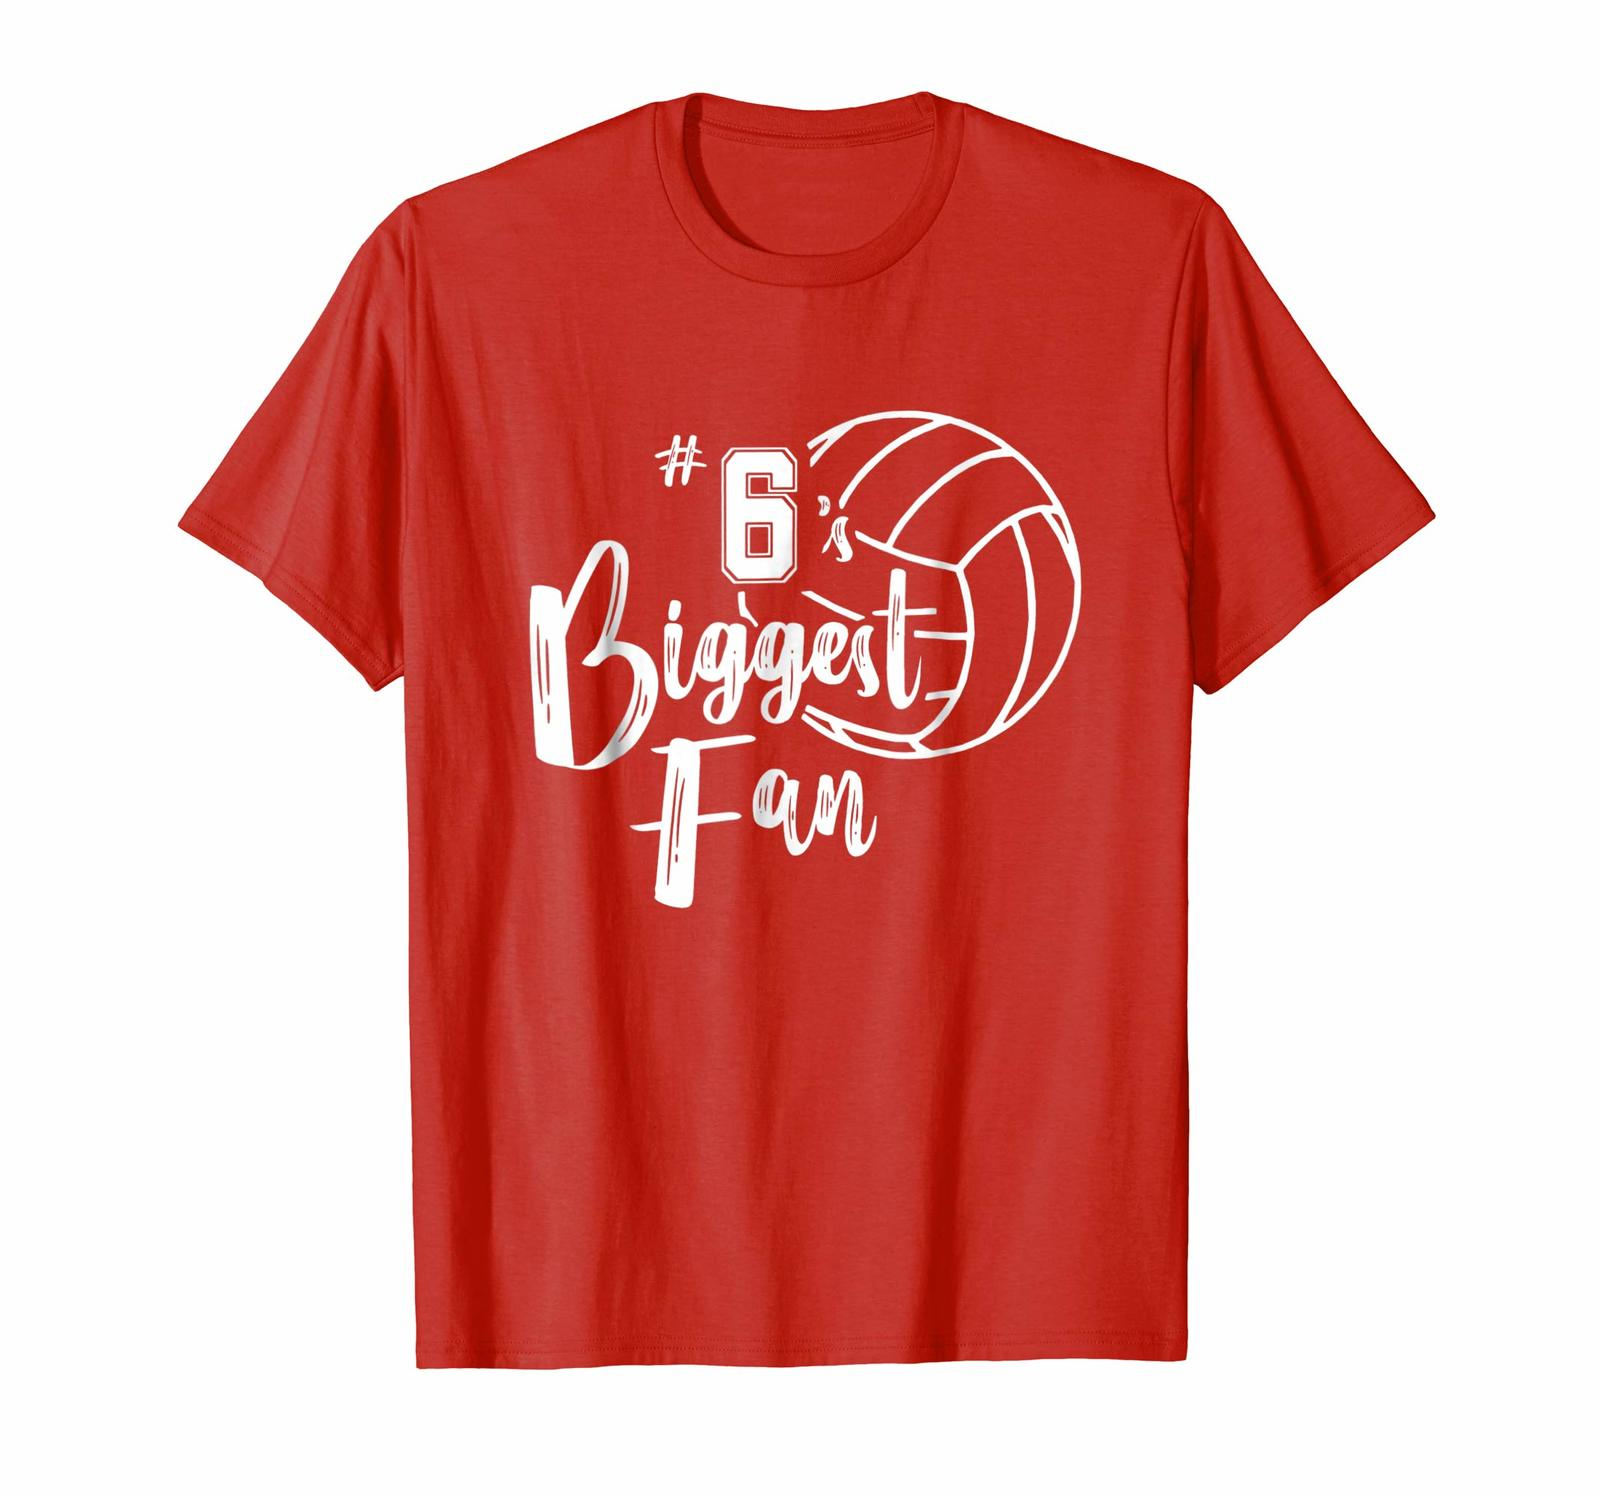 Funny Shirt - Six 6's Biggest Fan Shirt Volleyball Mom Volleyball Dad Men - $19.95 - $23.95